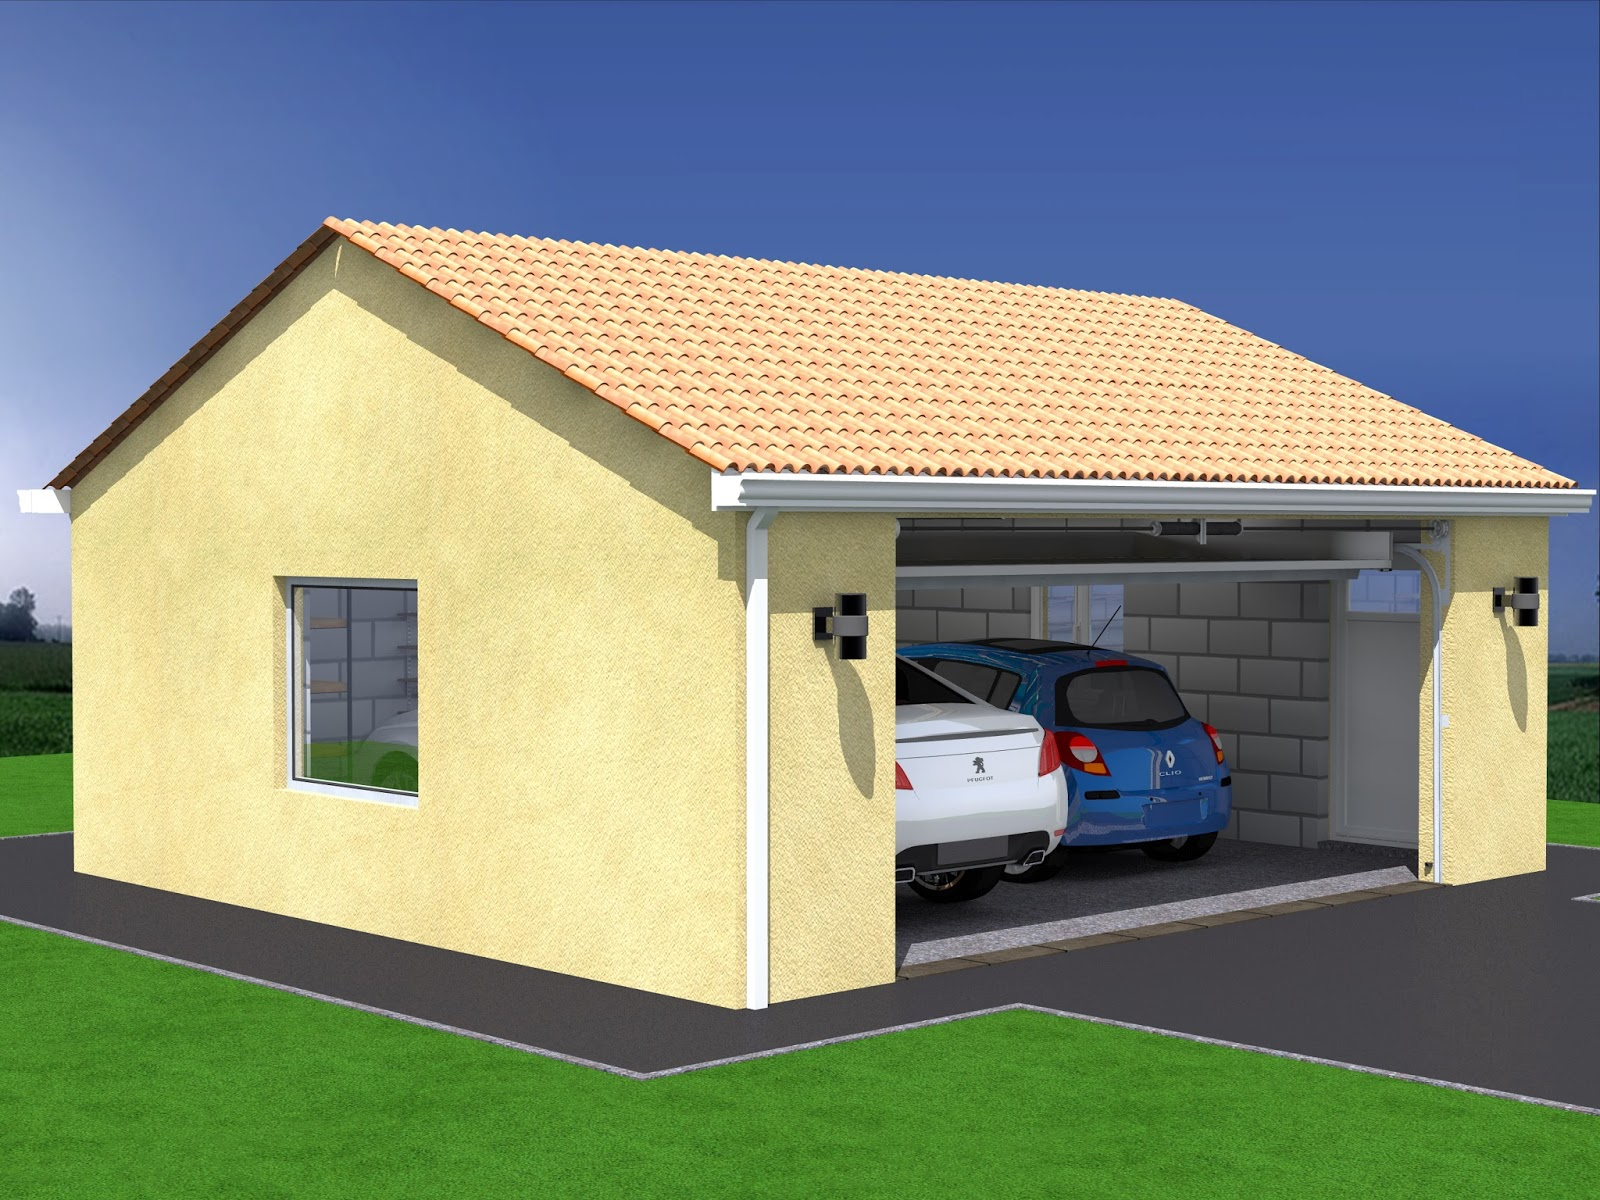 Cout de construction d un garage double l 39 impression 3d for 3d garage builder